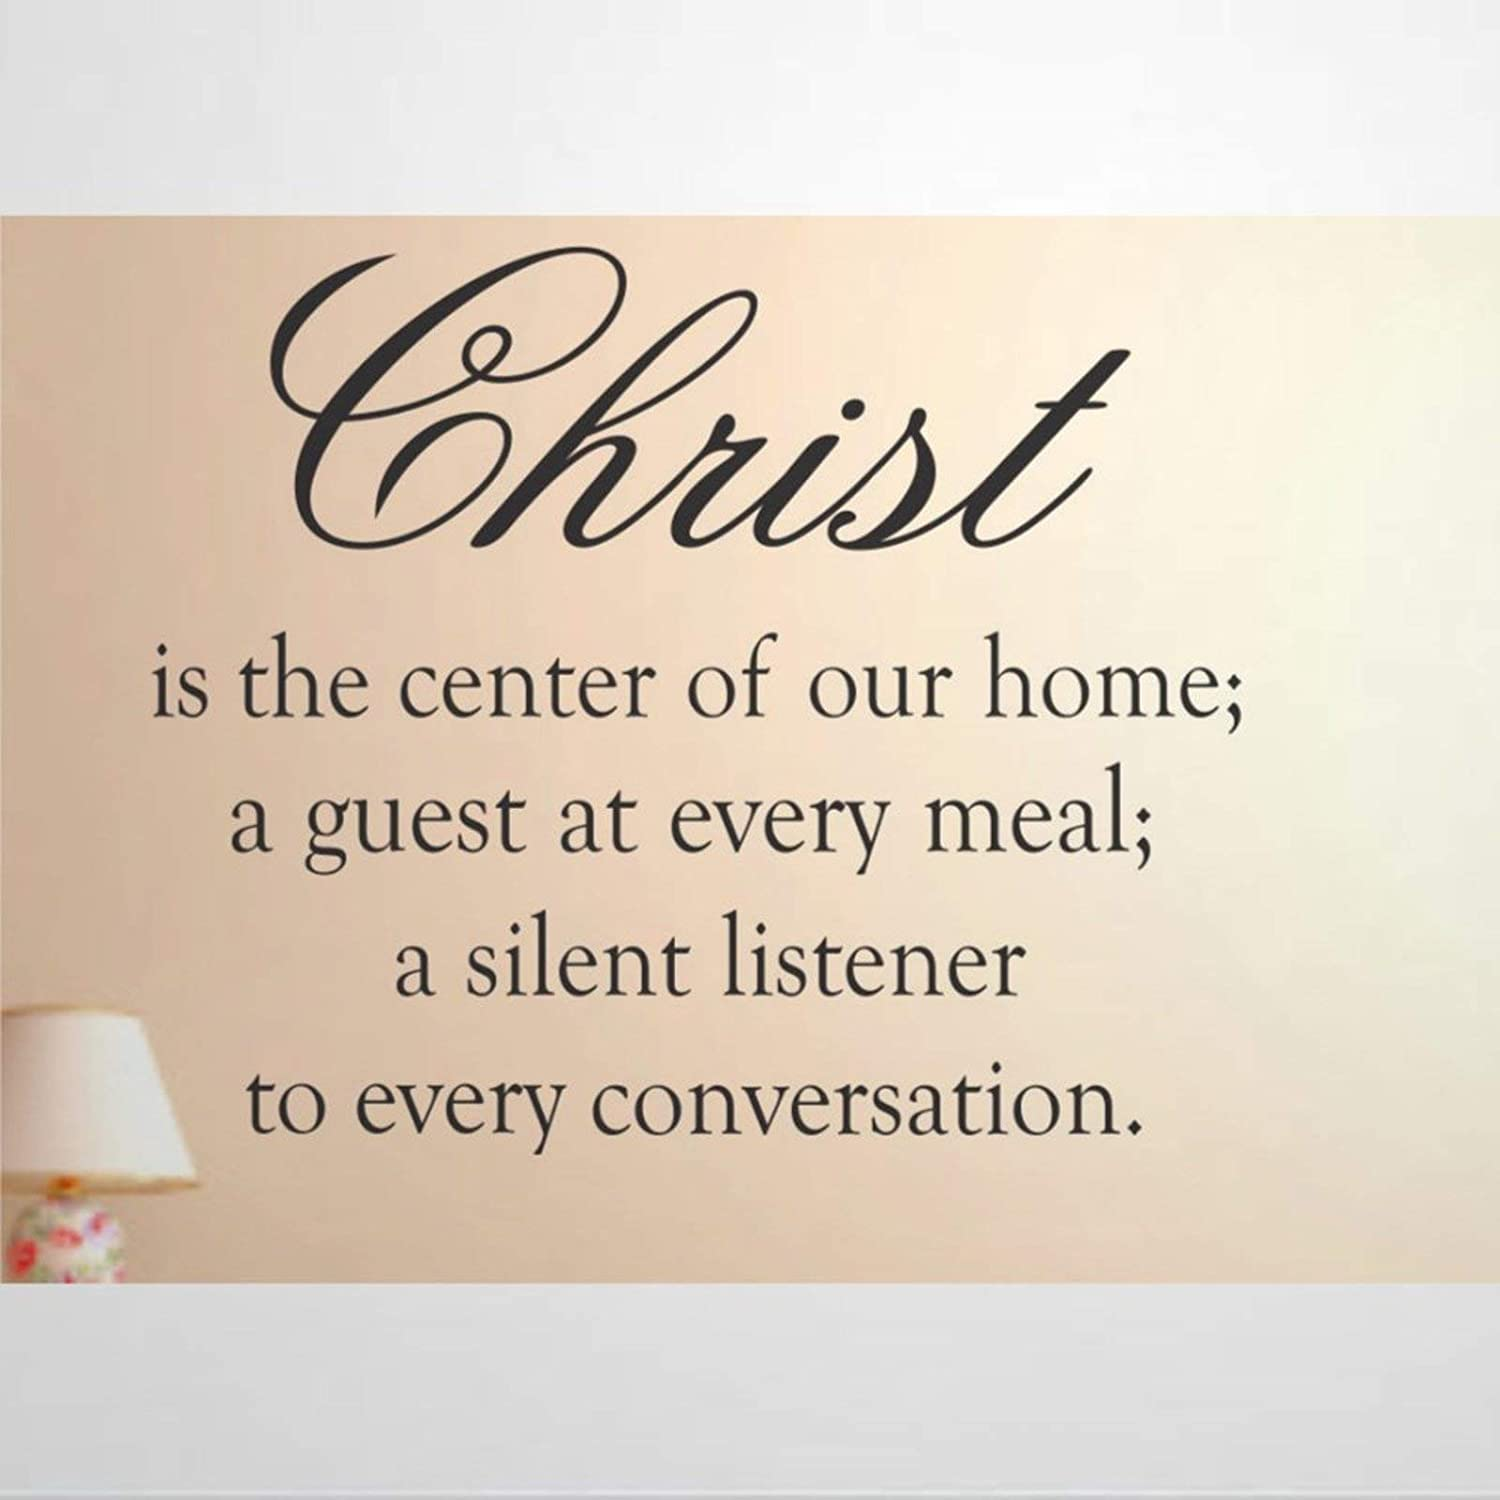 Christ is The Center of Our Home Wall Sticker, Vinyl Wall Decal,Decor for Windows,Living Room,Bumper,Laptop,Tumbler,Bathroom Home Decor